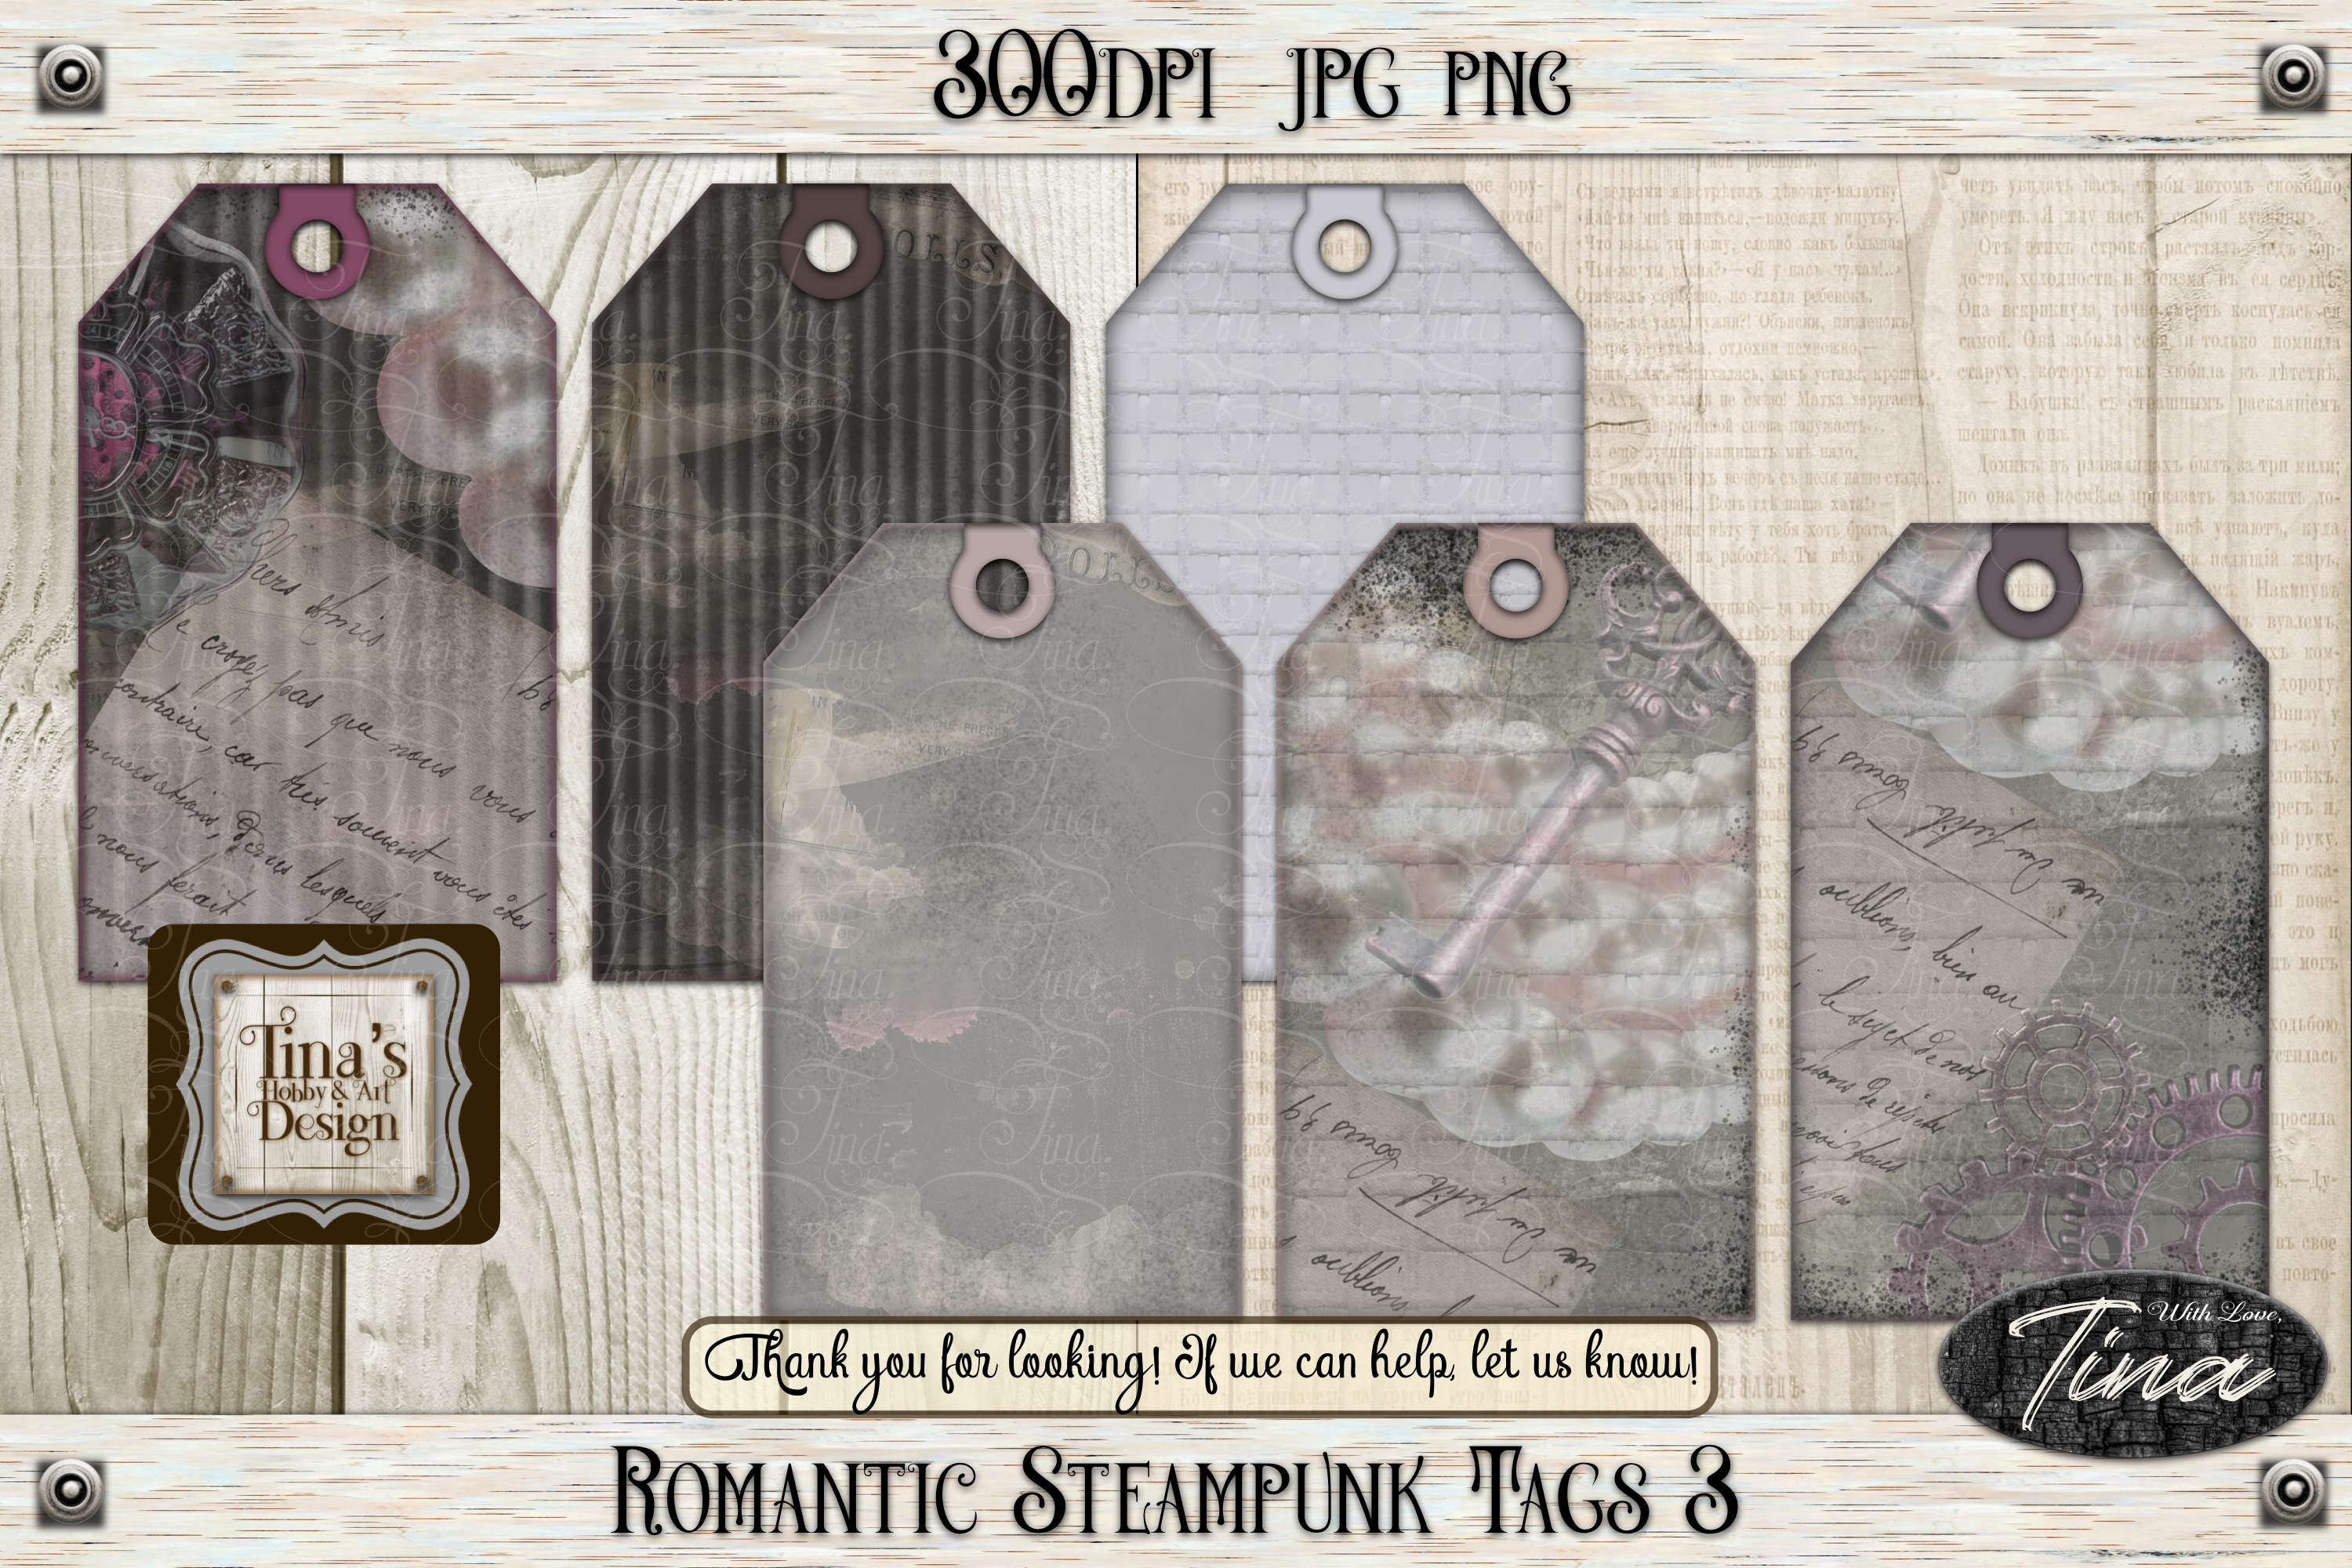 Romantic Steampunk 12 x 12 Collage Mauve Grunge 101918RS12 example image 4